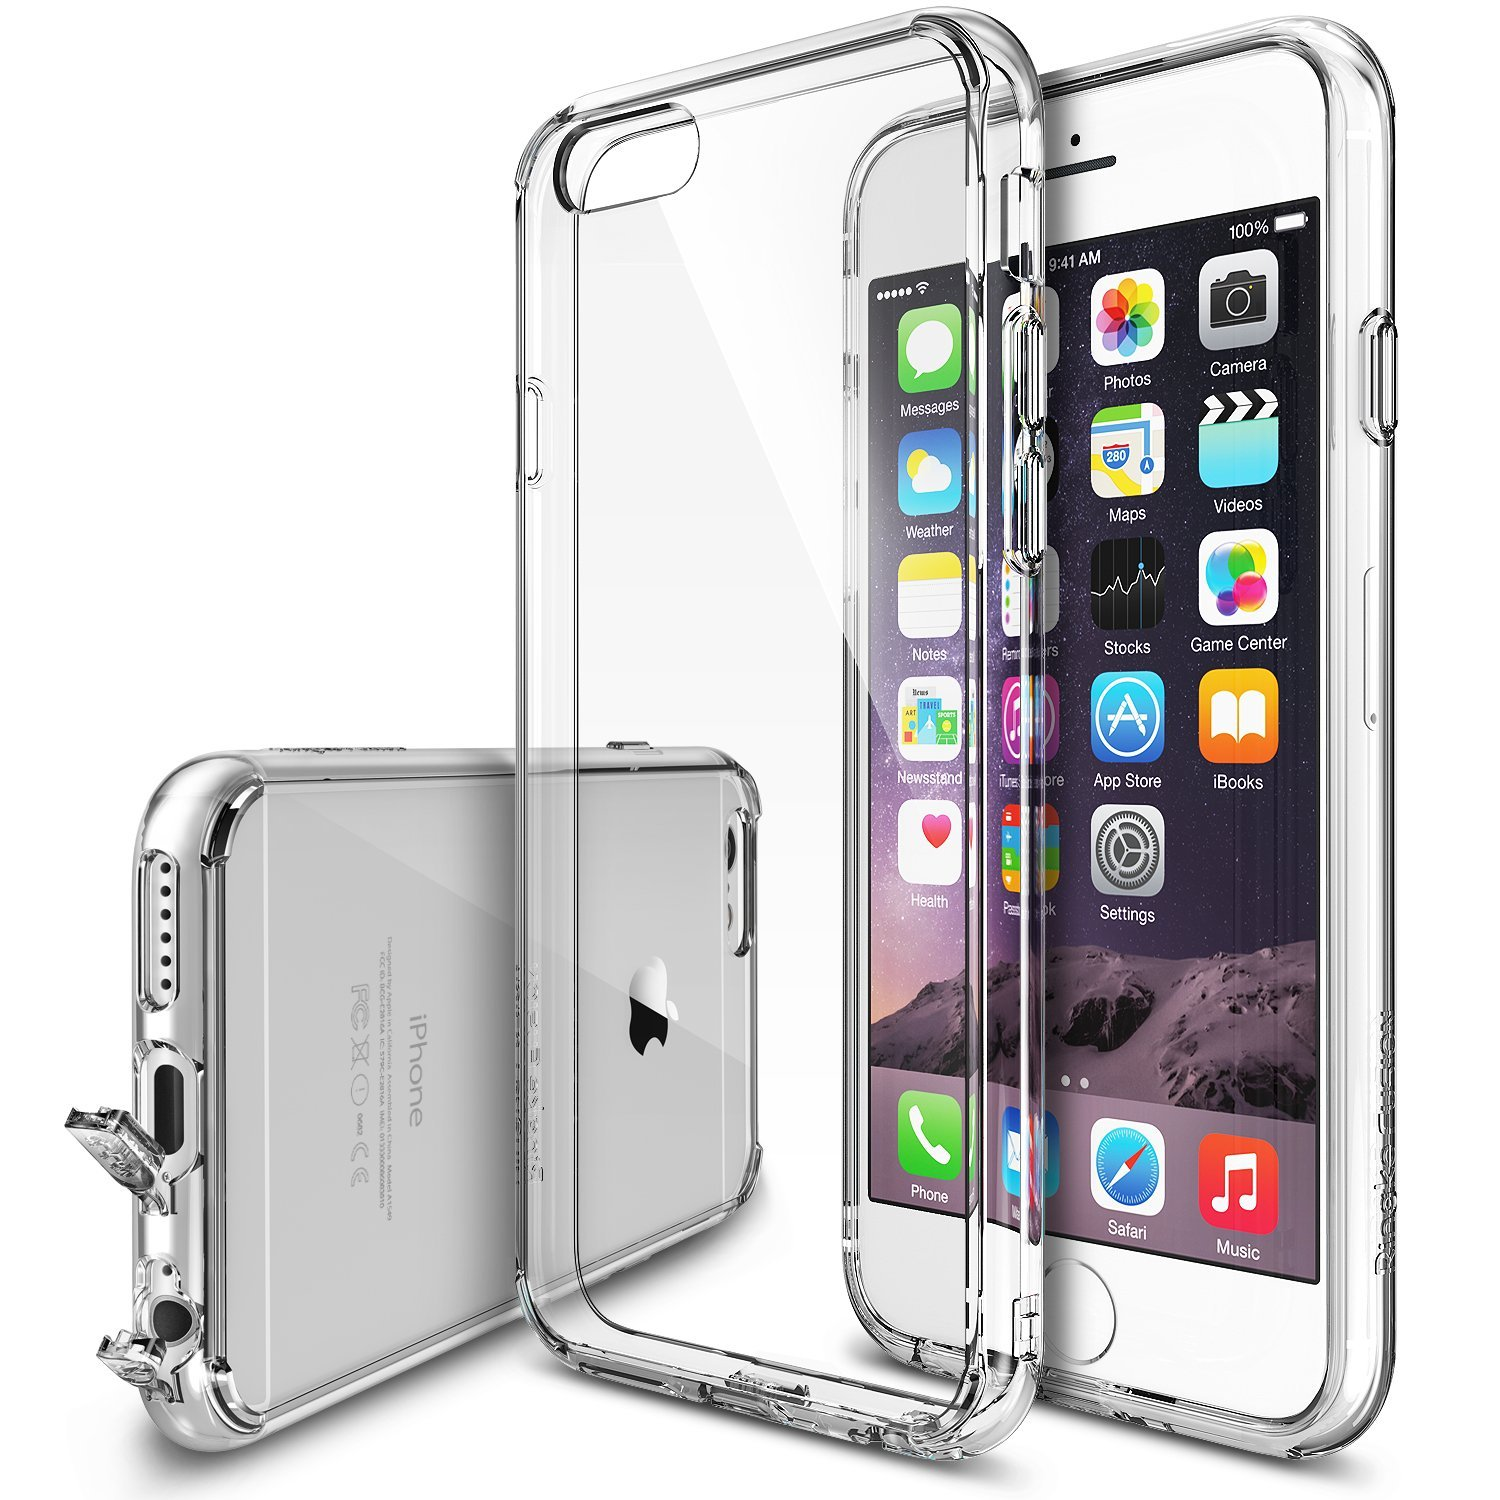 Apple iPhone 6 PLUS/6S PLUS (5.5 inch) Bumper Case by Ringke [Clear] Featuring Shock Absorption TPU Bumper with Crystal Clear Hard Polycarbonate Back & Screen Protector